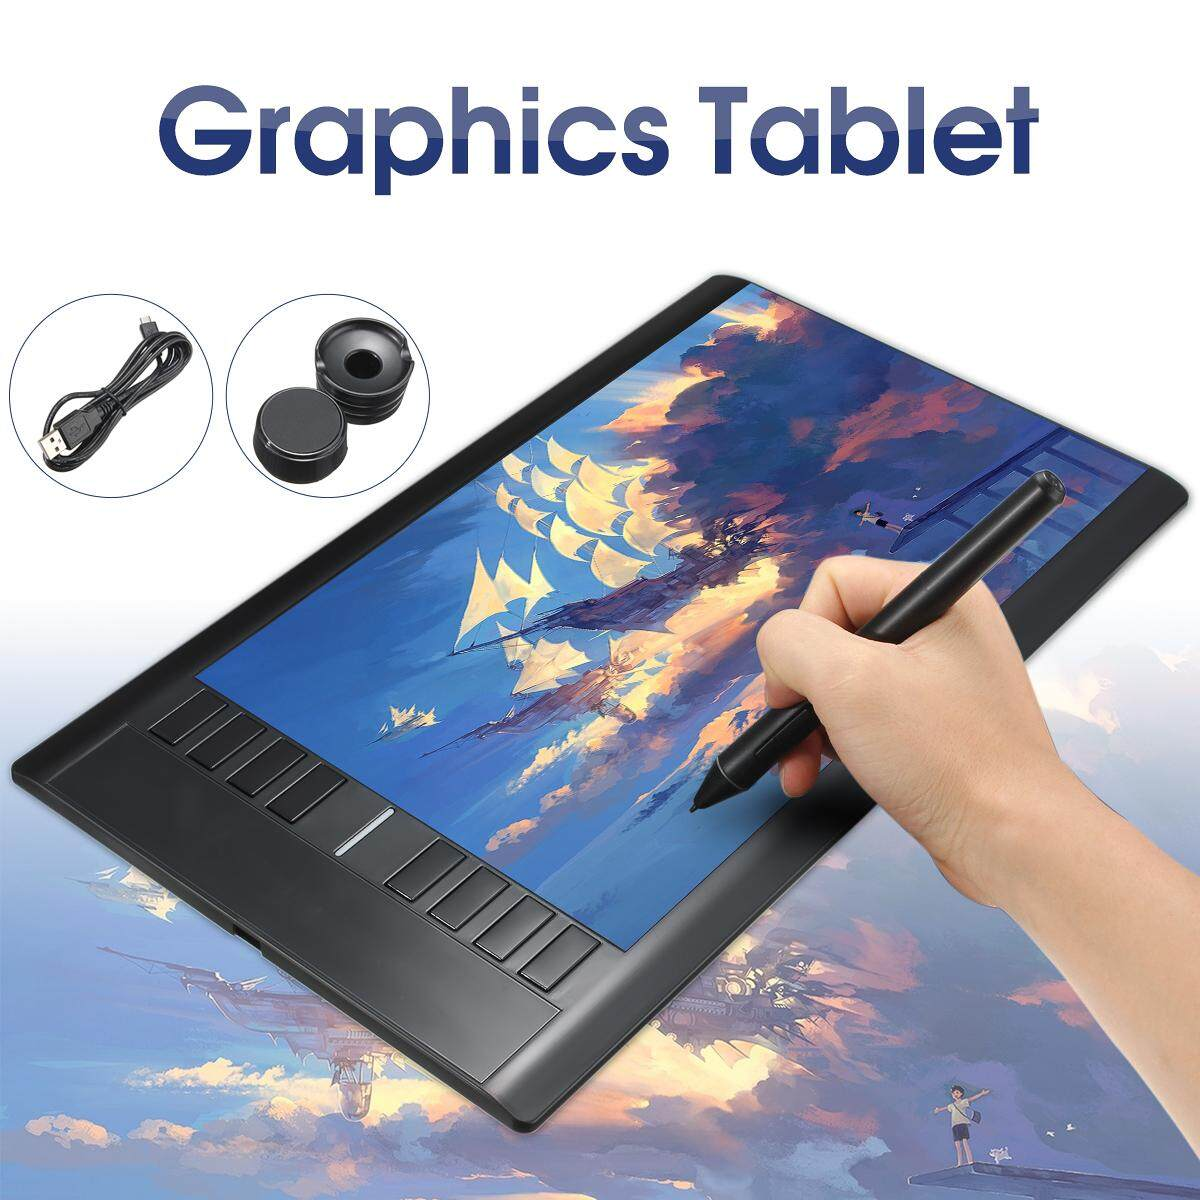 【Free Shipping + Flash Deal】UK UGEE M708 Slim Pro Drawing Graphics Tablet  14x8